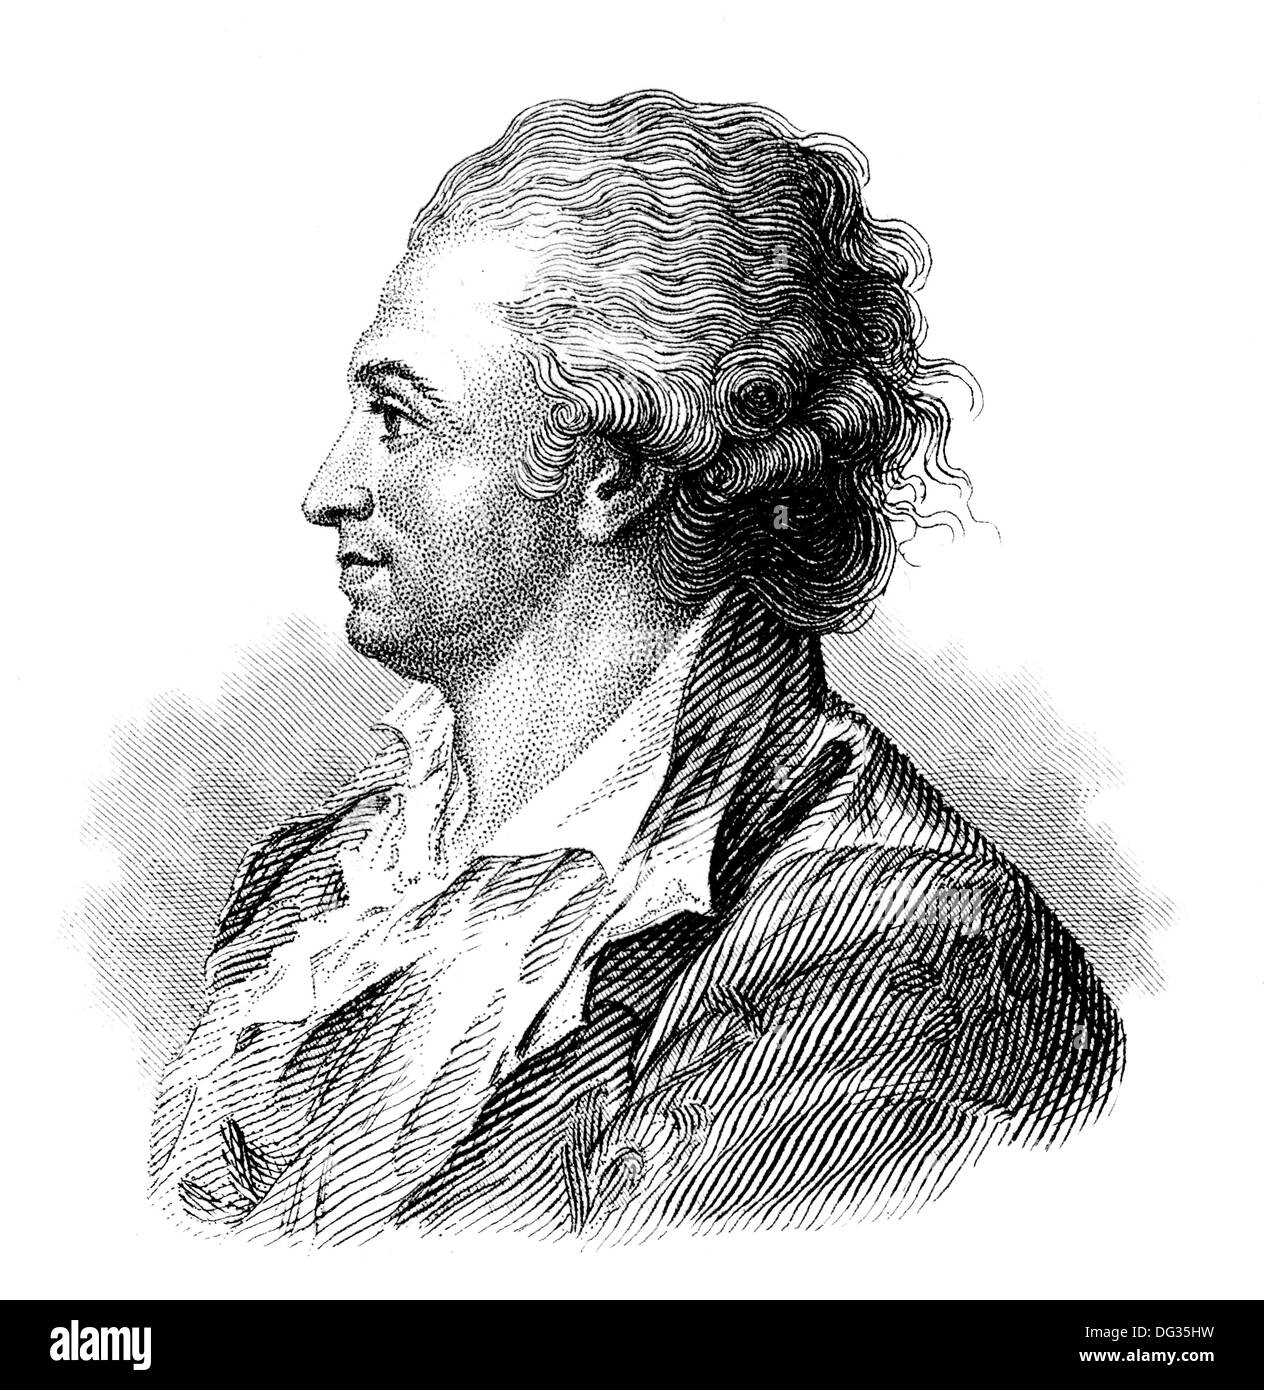 Pierre-Augustin Caron de Beaumarchais, 1732 - 1799, a French entrepreneur and writer, - Stock Image